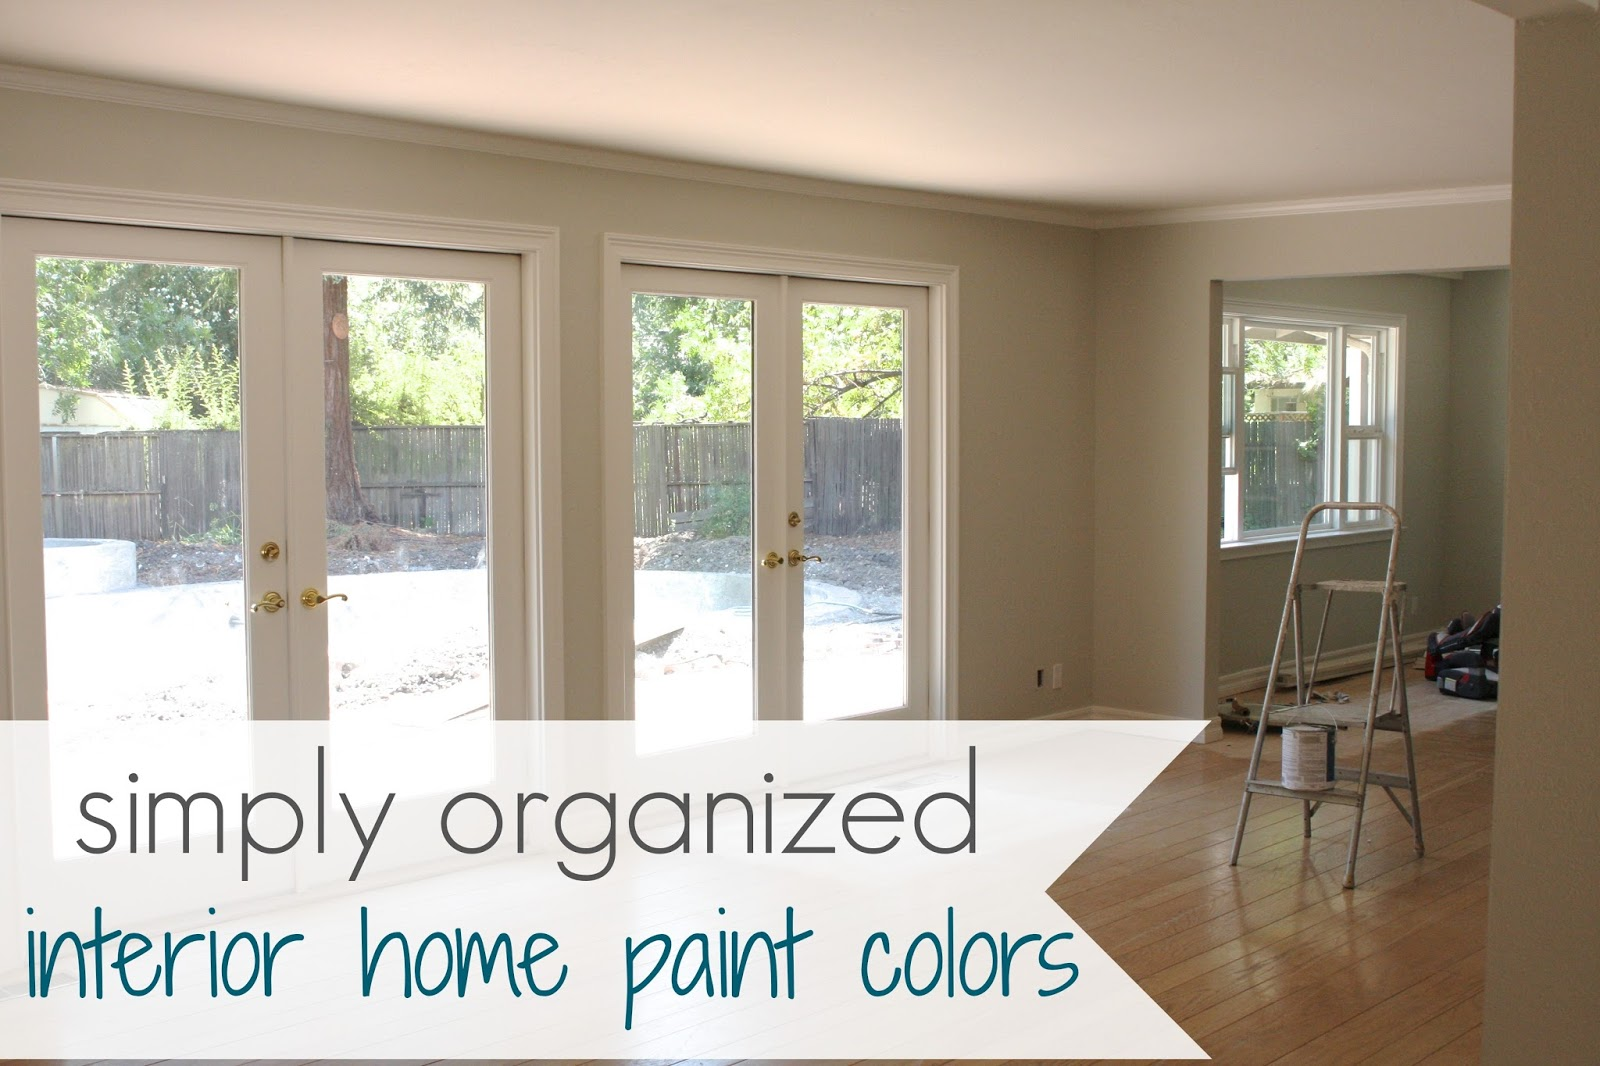 Simply organized my home interior paint color palate - Interior home paint colors ...